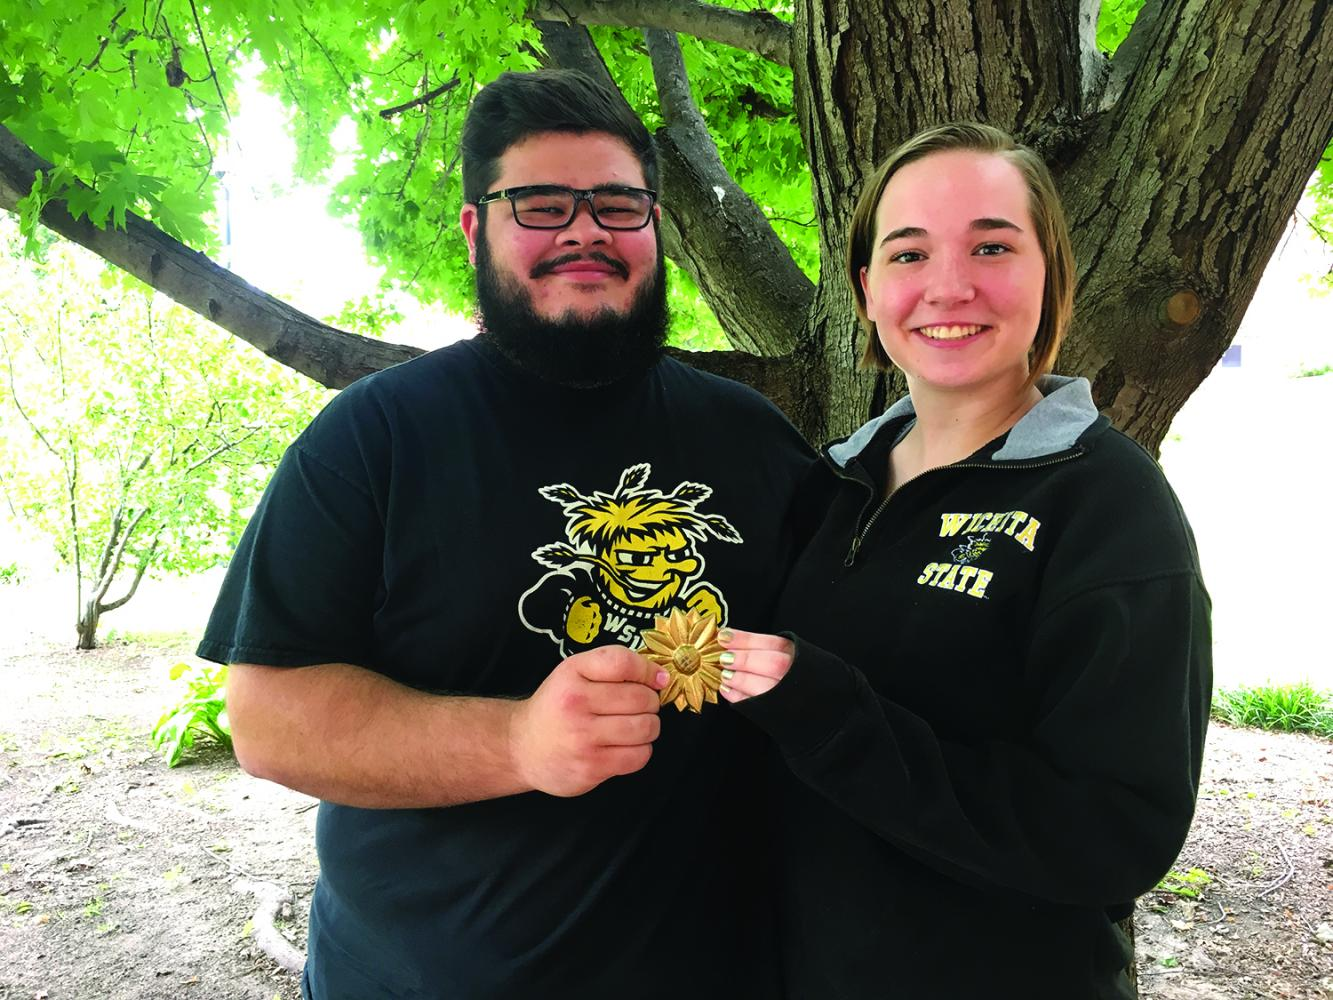 The Sunflower Medallion Hunt winners hold their coveted quarry. Connor Burden, left, and Megan Singleton, right, found the medallion Saturday evening, after six clues.